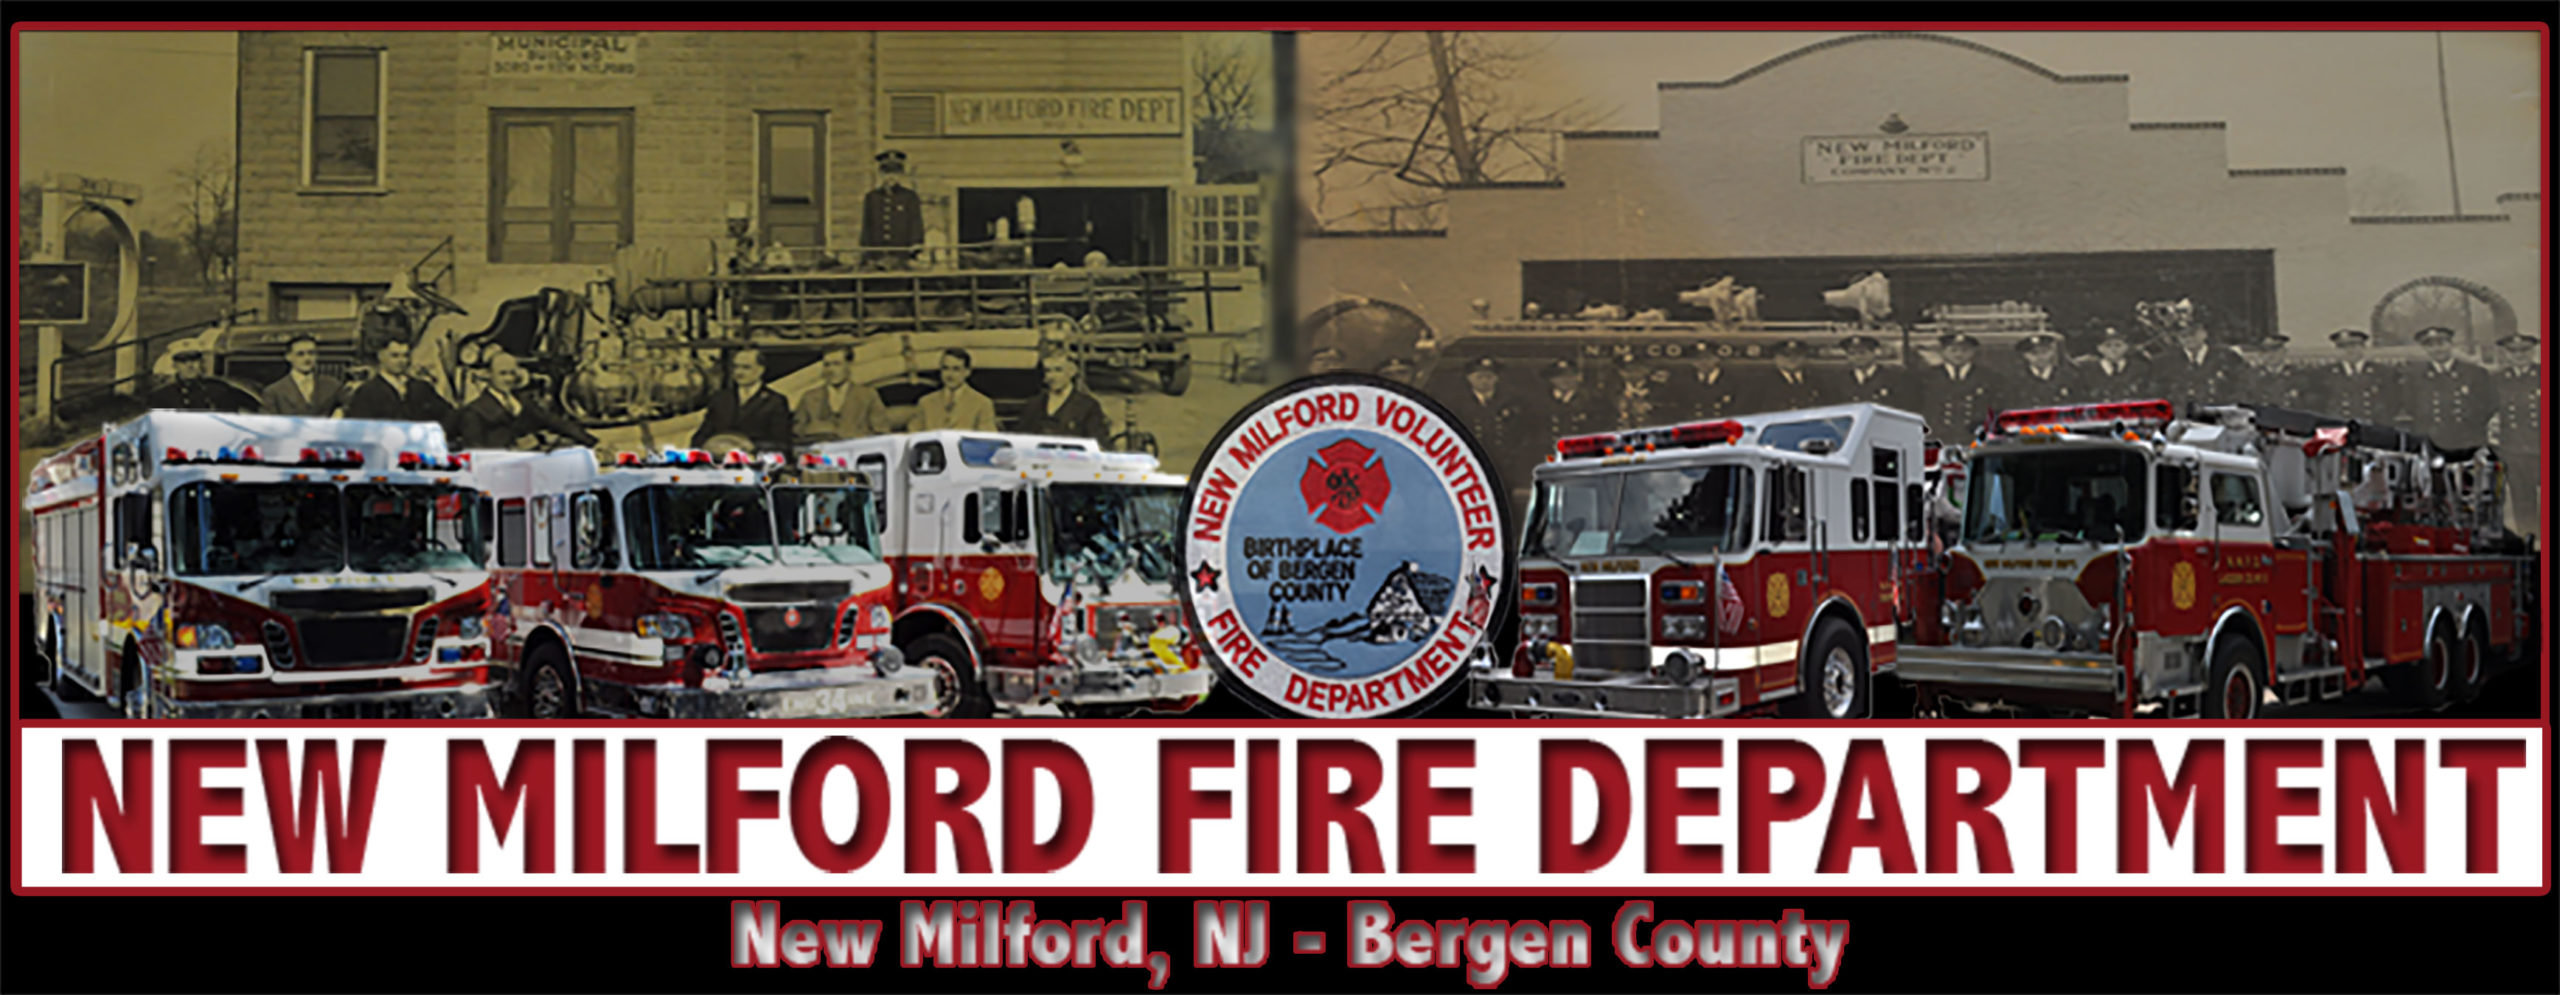 New Milford Fire Department